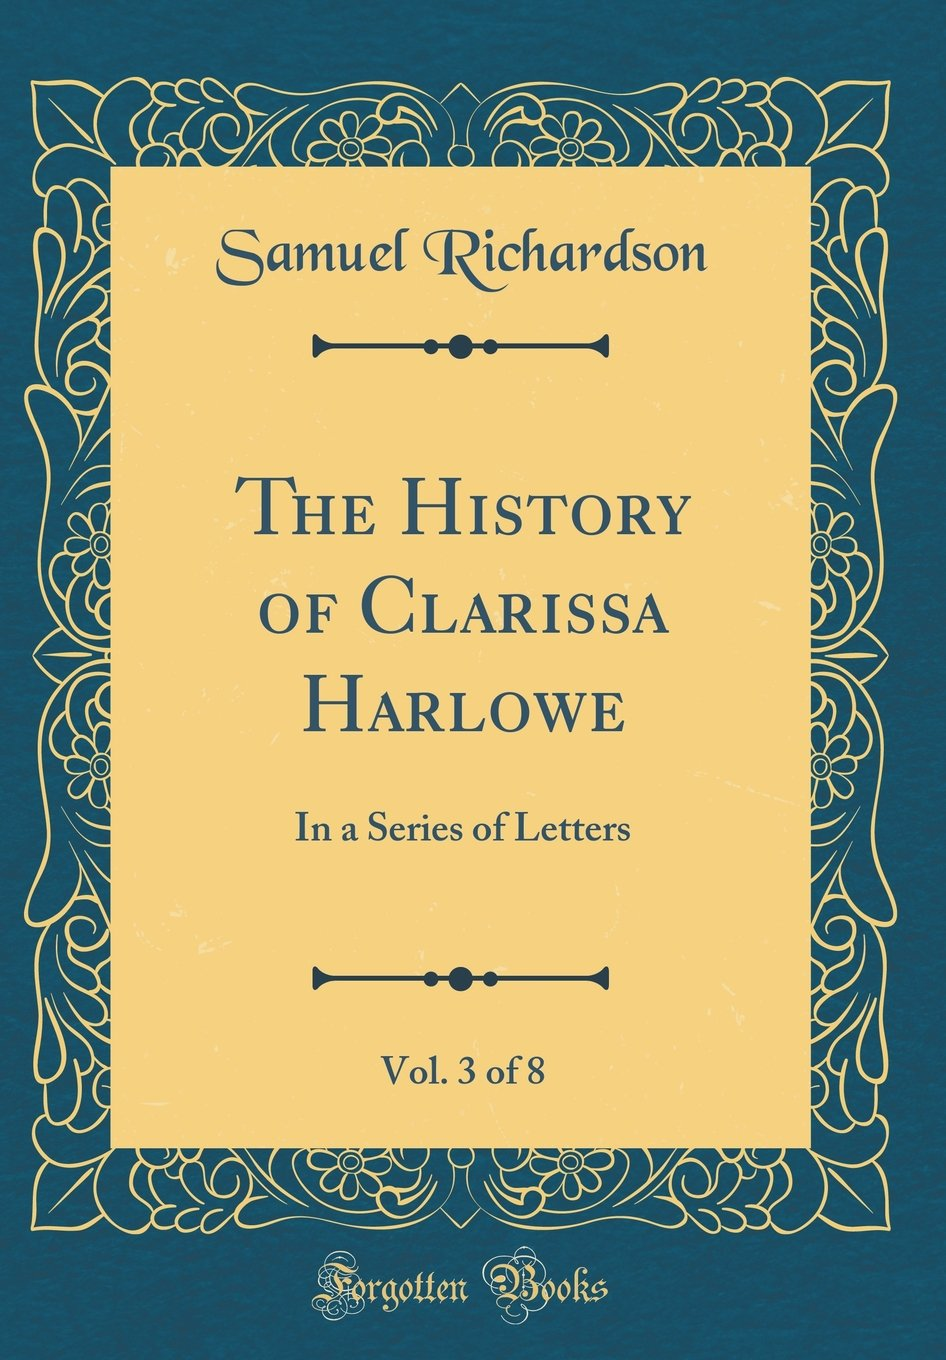 The History of Clarissa Harlowe, Vol. 3 of 8: In a Series of Letters (Classic Reprint) pdf epub